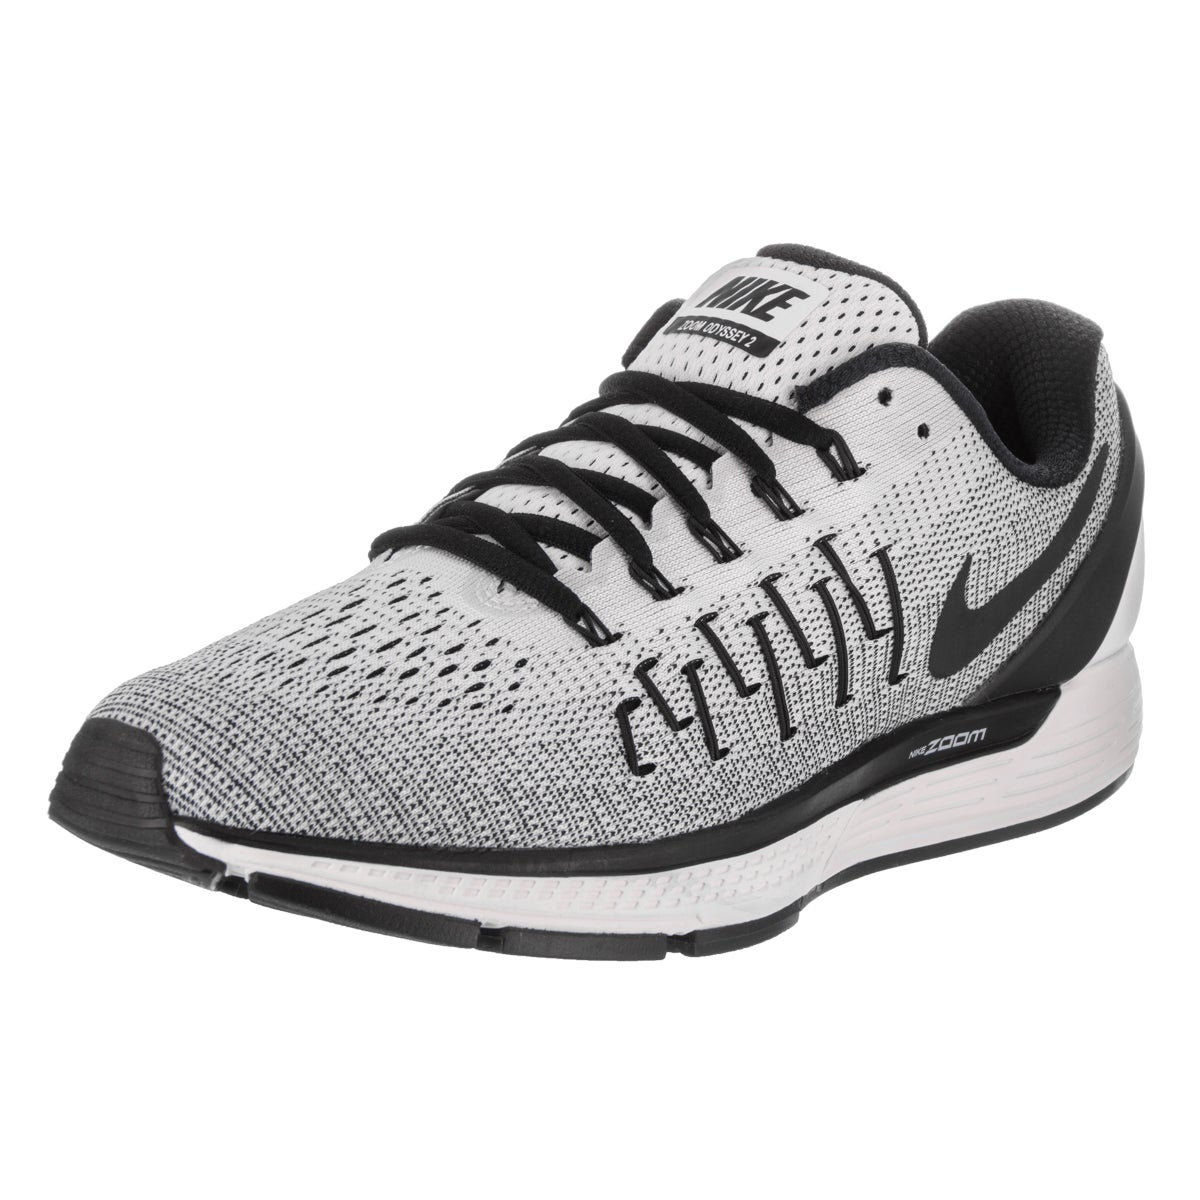 Nike Men's Air Zoom Odyssey 2 White Synthetic Leather Run...